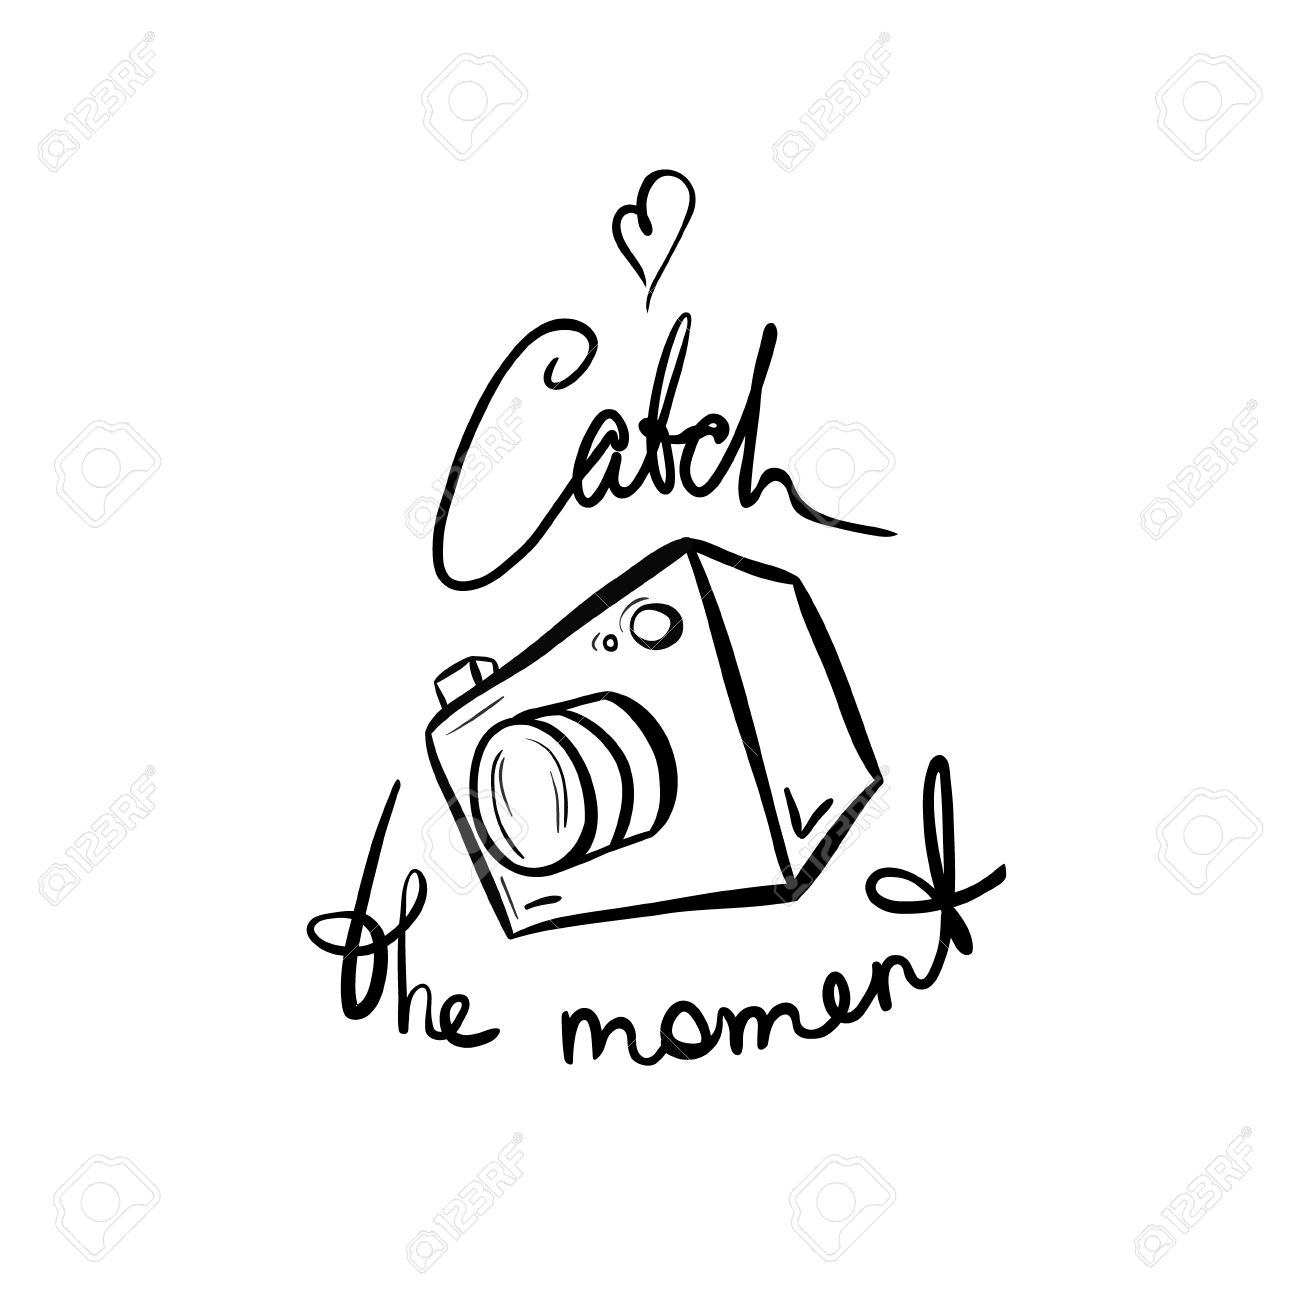 1300x1300 Illustration Of A Camera. Catch The Moment. Take A Photo, Take